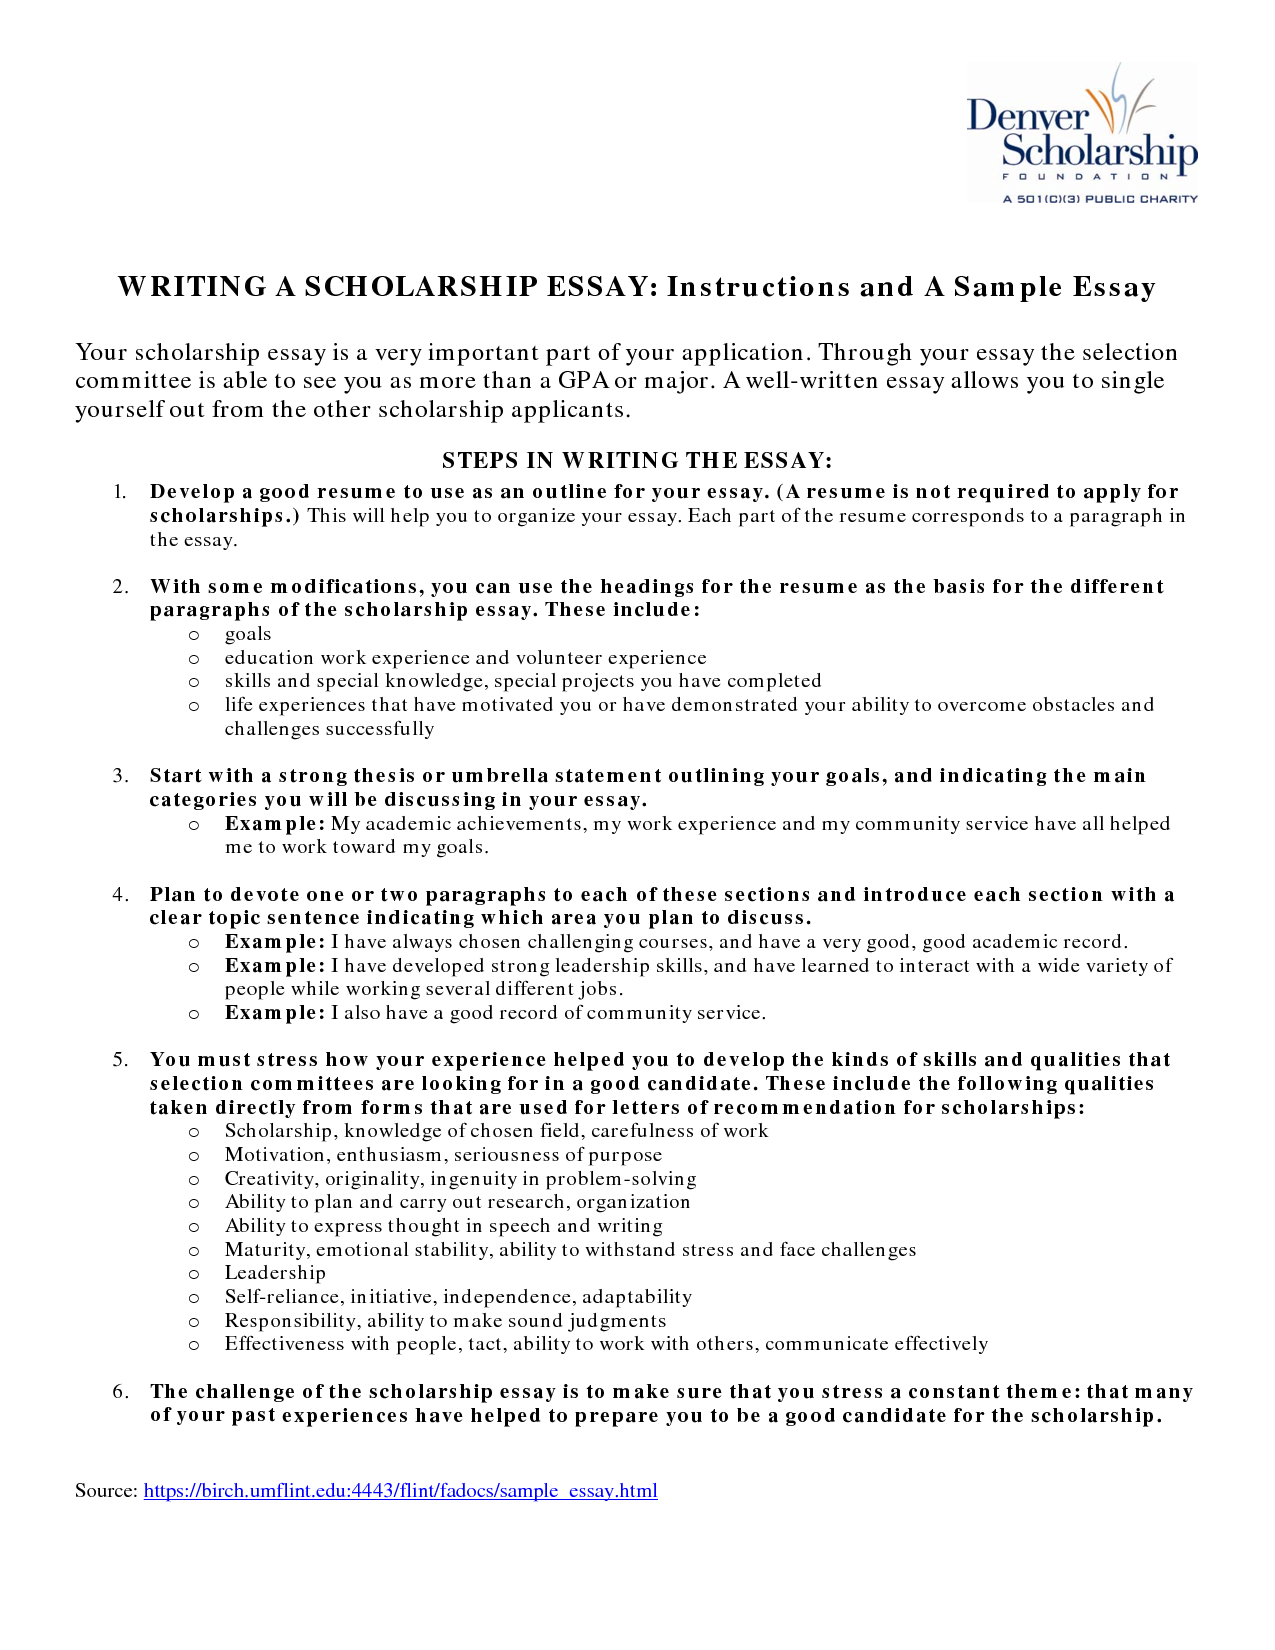 Essay About Writing Center